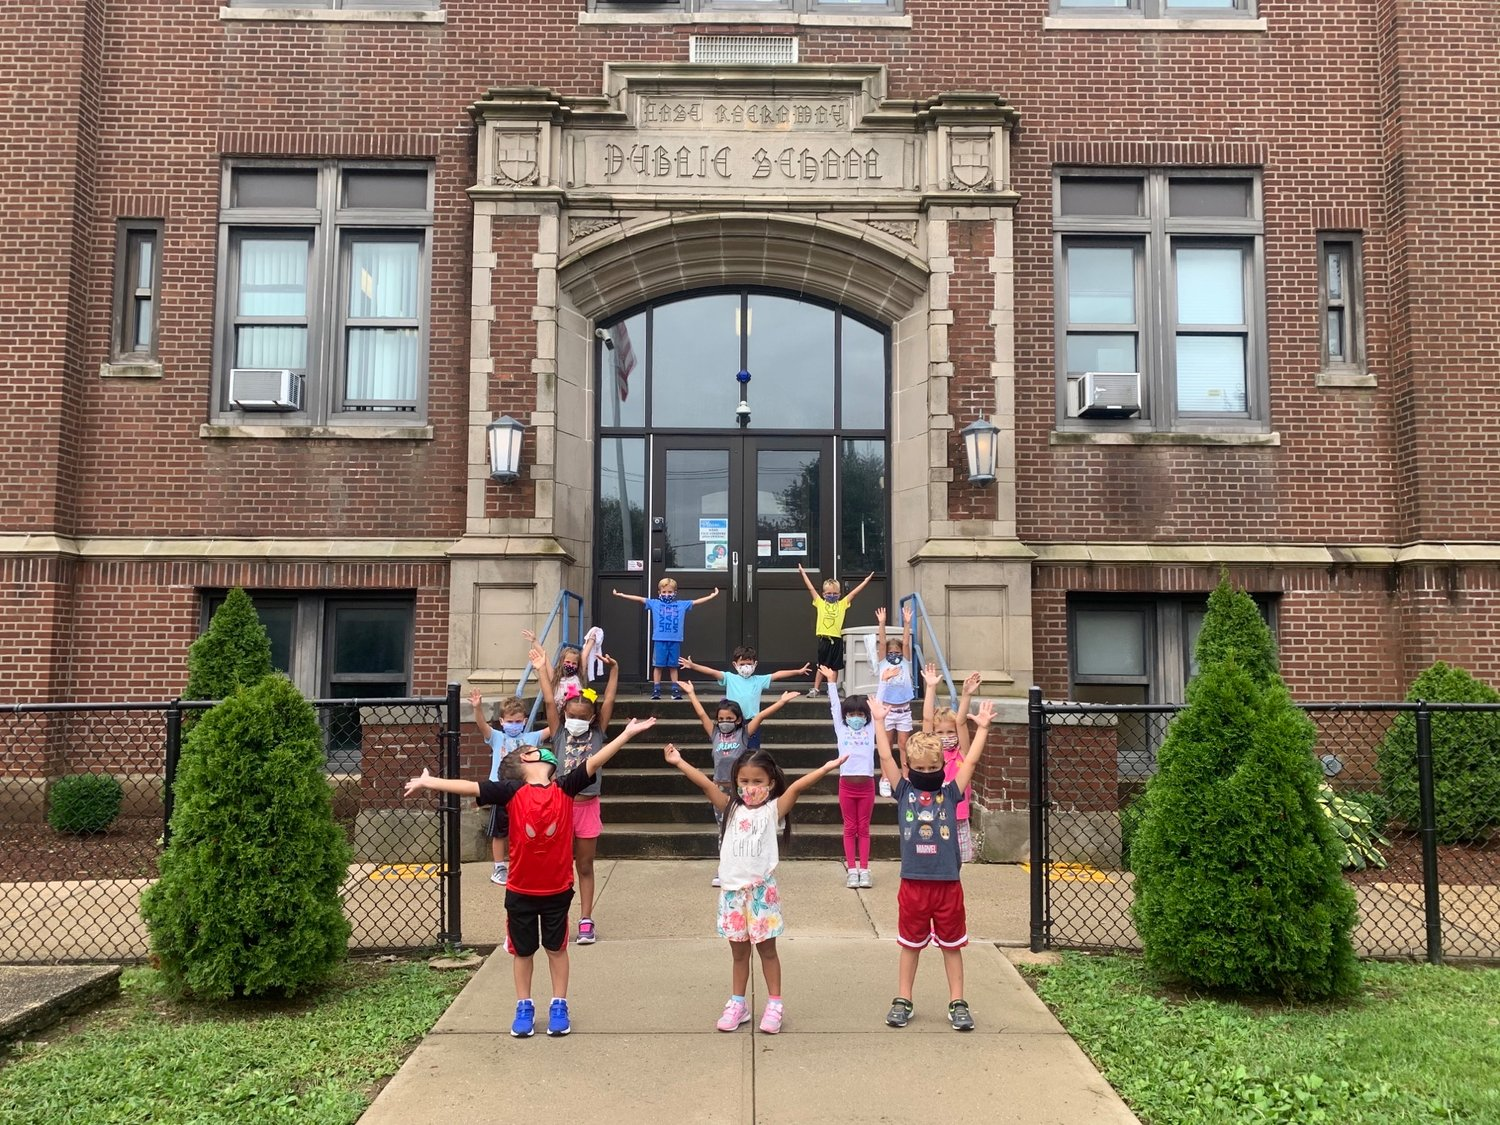 Students and staff returned to school last week in Lynbrook and East Rockaway. Students at Centre Avenue Elementary School were clearly excited to go back.